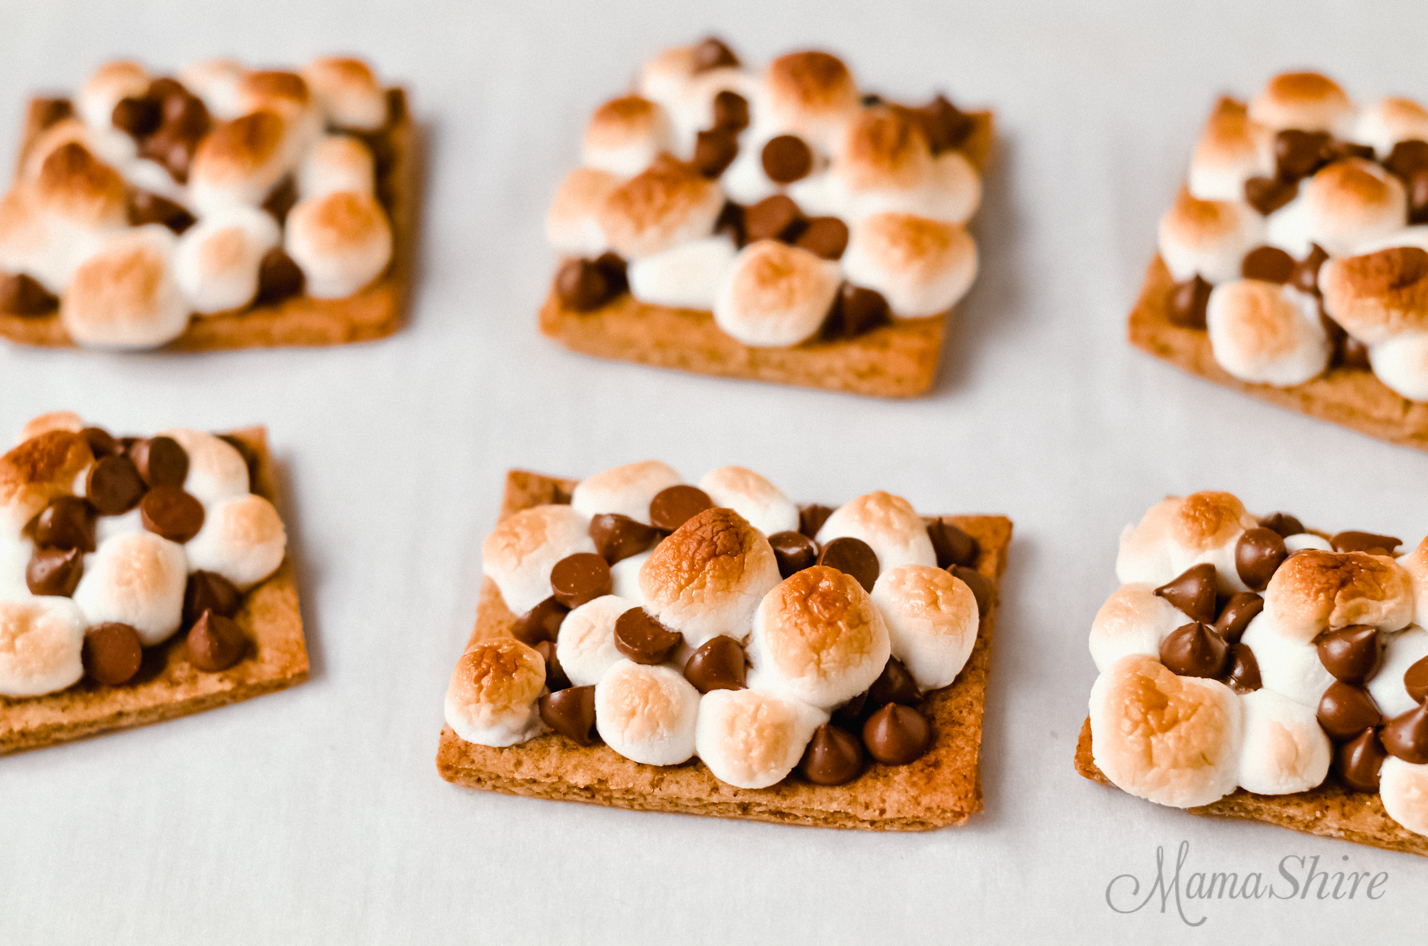 A gluten-free s'mores oven recipe for the easiest s'mores ever.